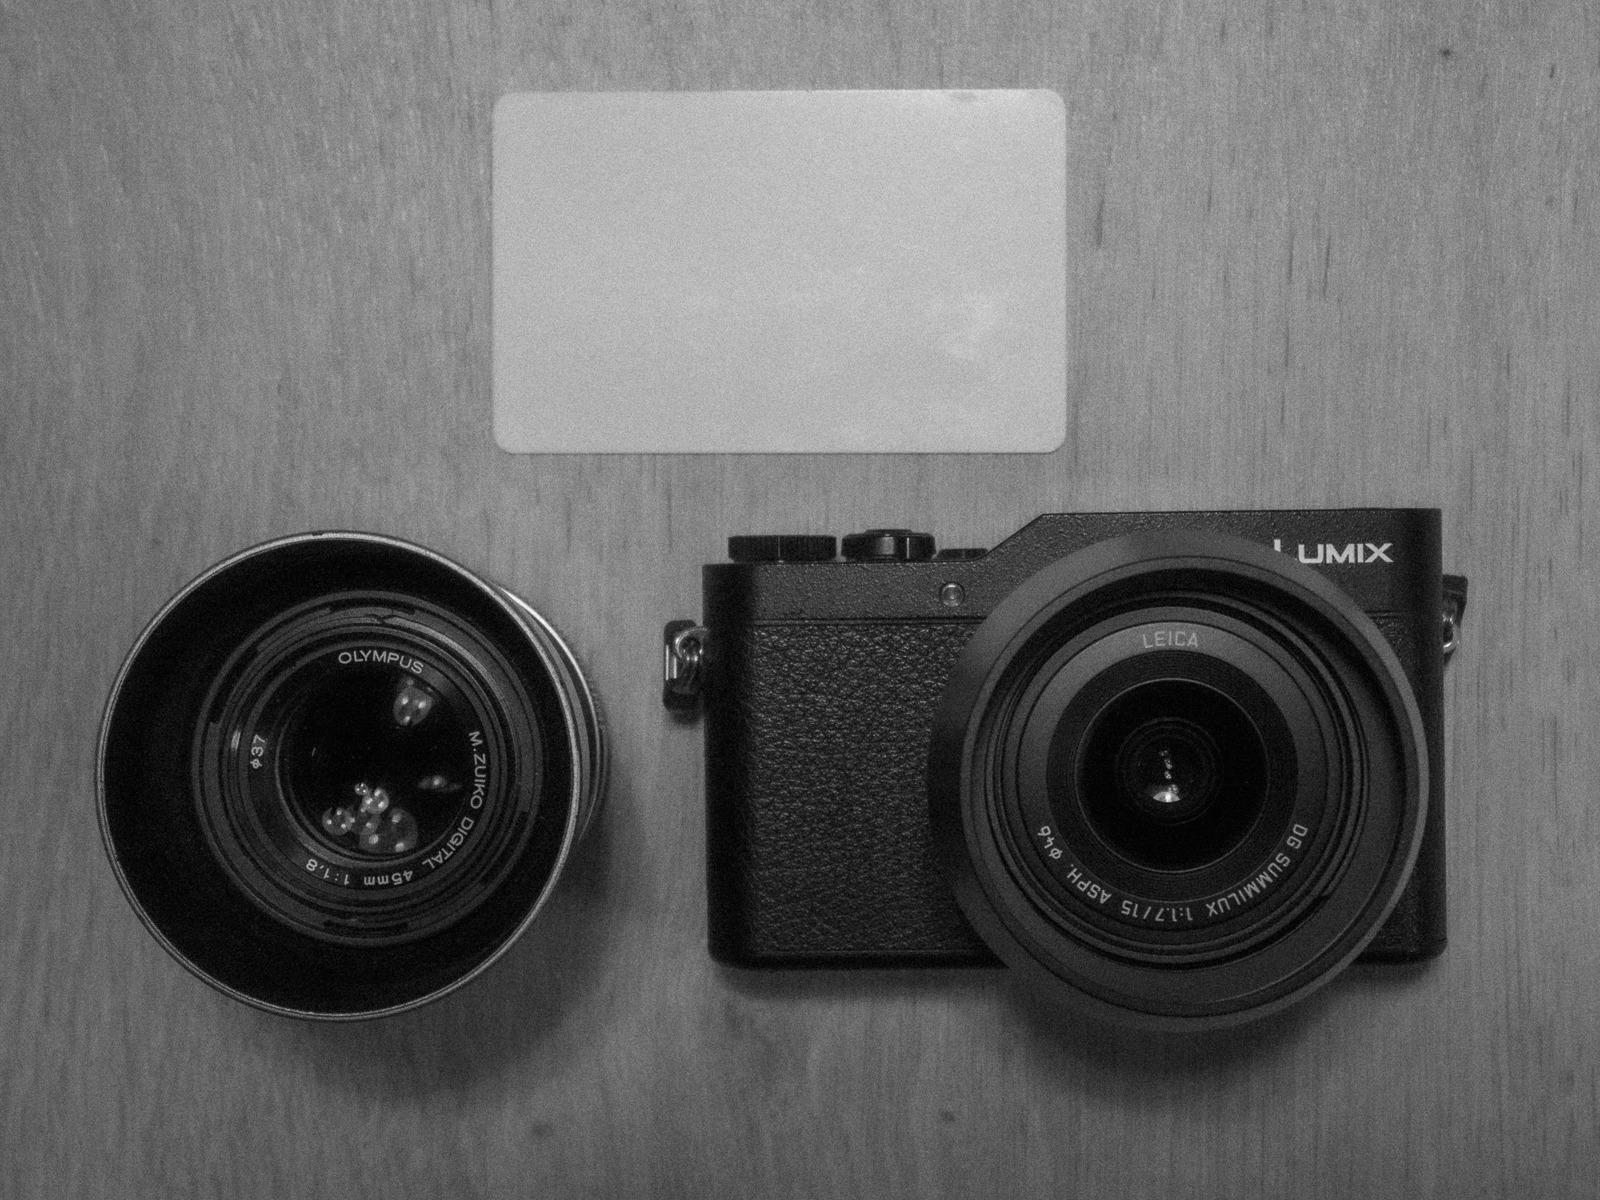 Panasonic GX800 next to a credit card and an Olympus 45mm lens